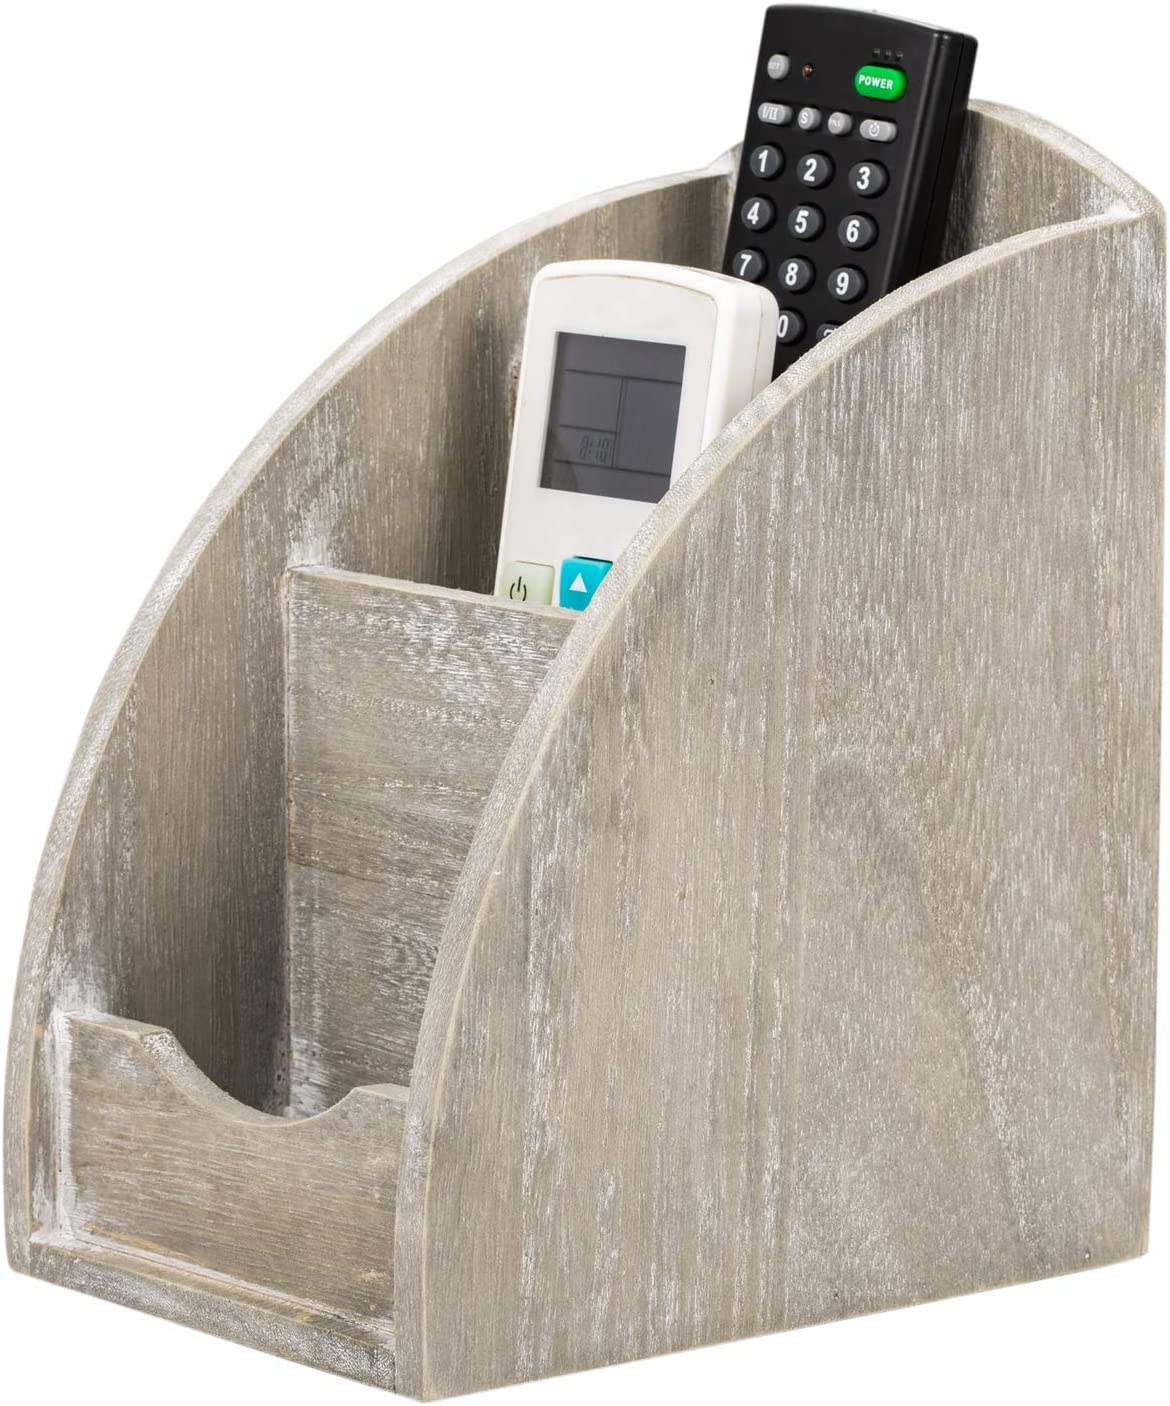 NEX Remote Control Max 84% OFF Holder 3 Slot Caddy Me Limited price Wooden